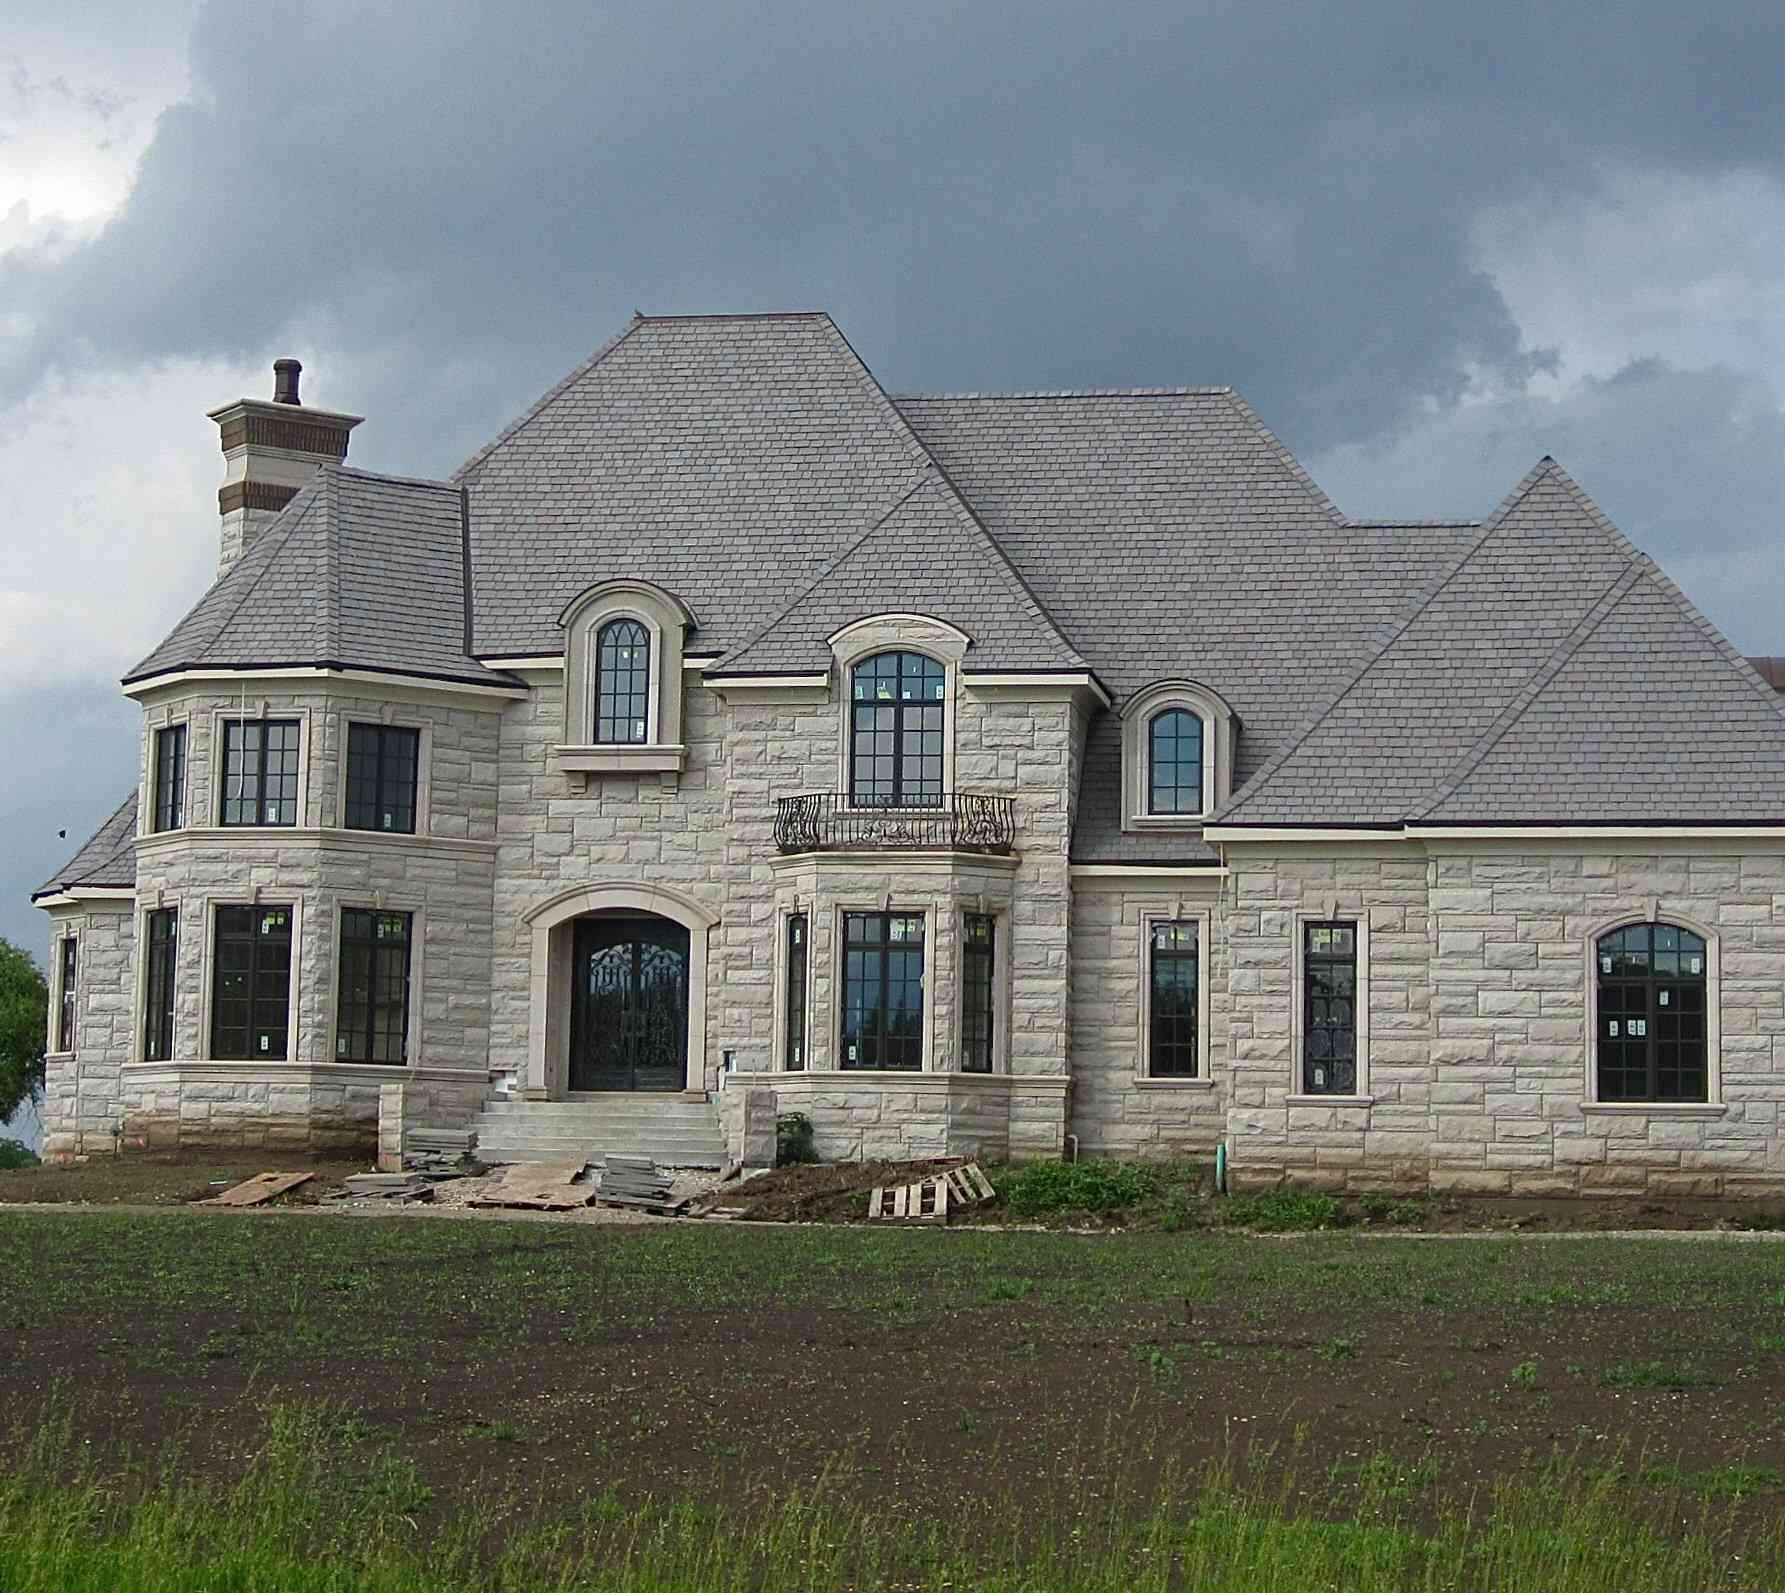 Large grey stone mansion too big, so it's called a McMansion, in Illinois